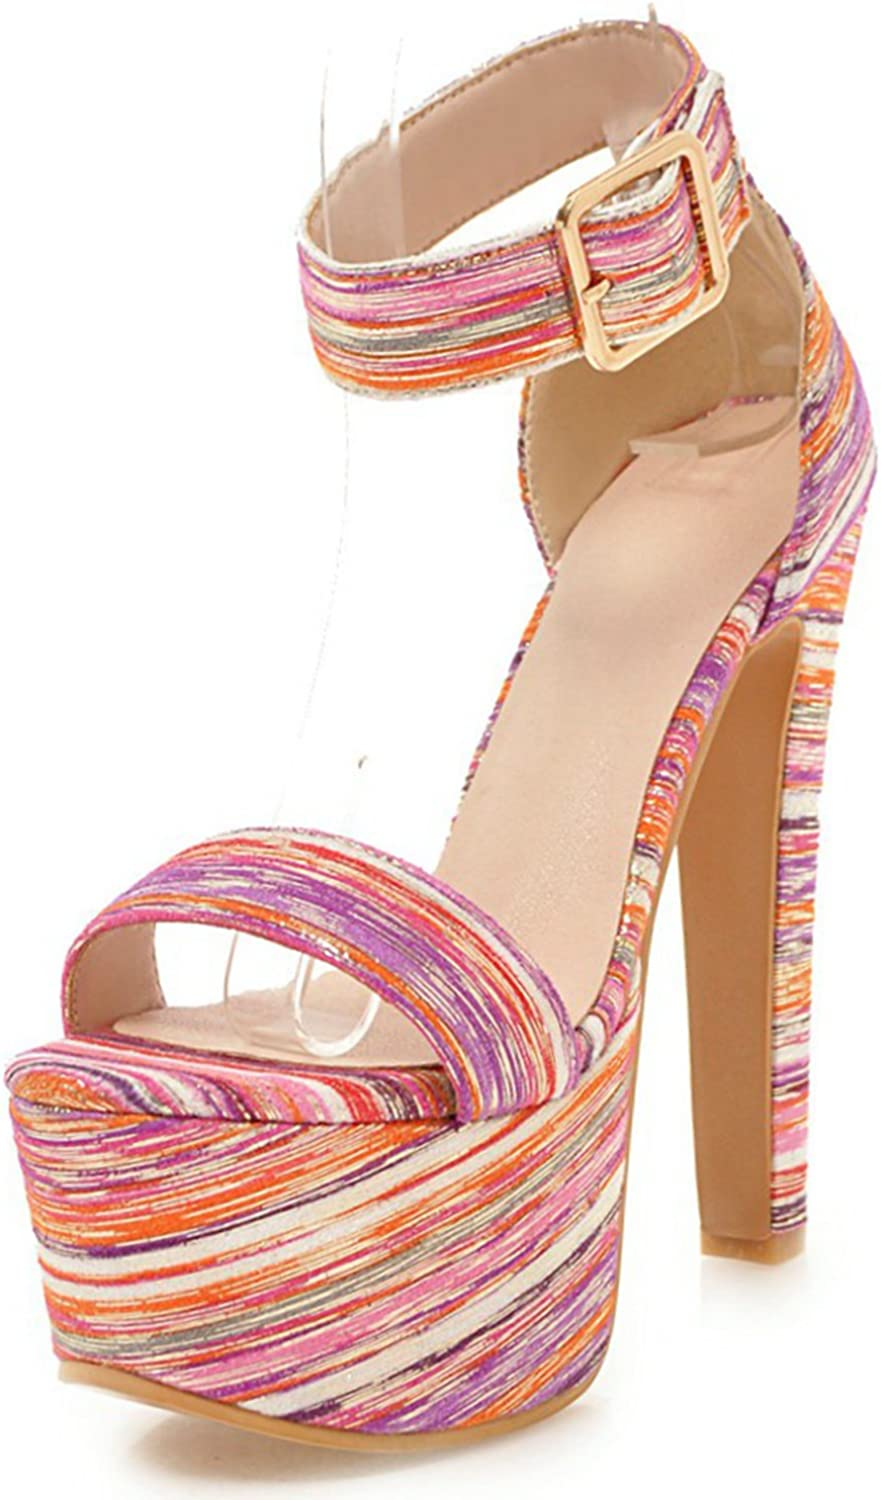 DoraTasia Women's Sexy Comfortable Breathable Sandals Heeled Sandals- Buckled Ankle Strap Open Toe High Heel Sandals